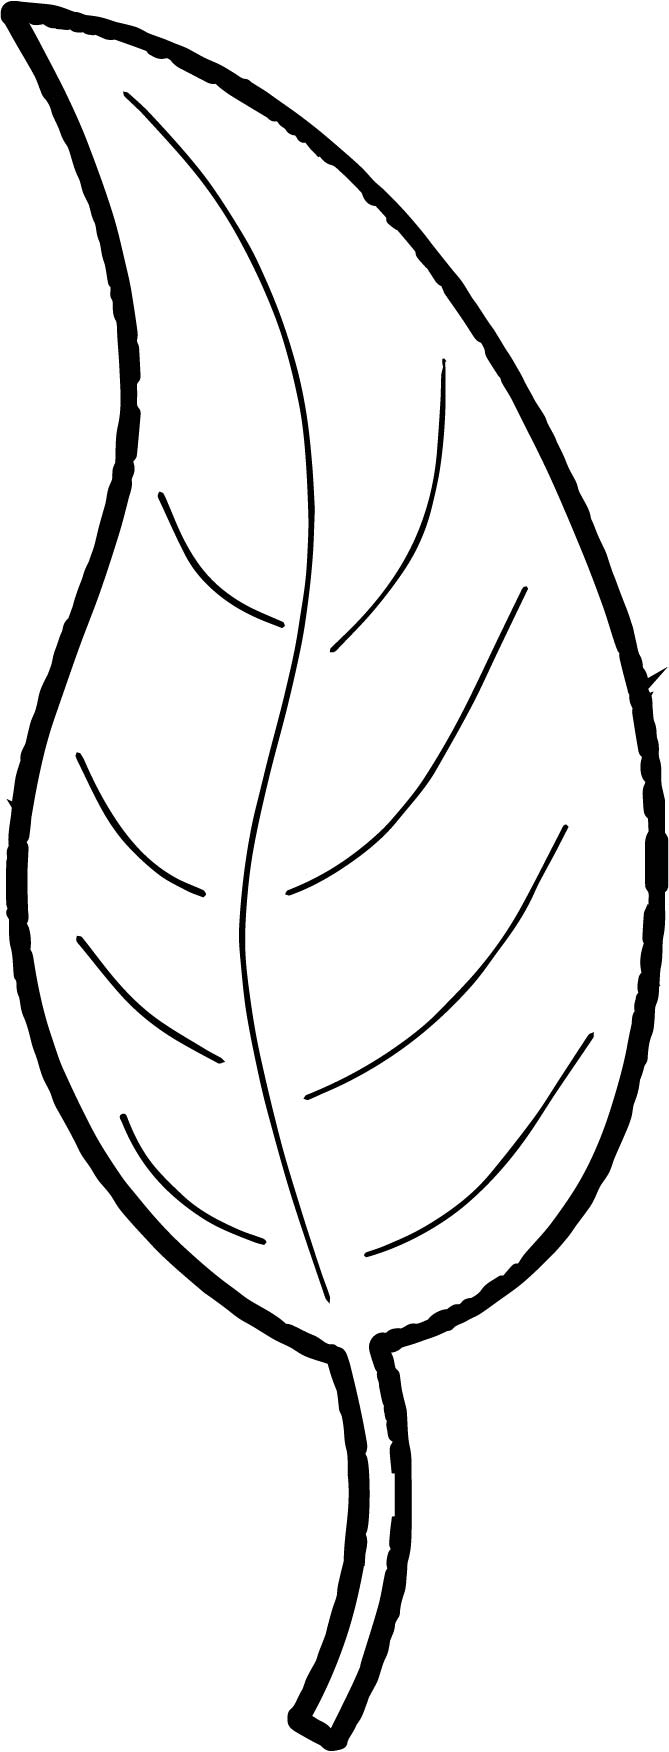 autumn leaves pictures to colour fall coloring pages for young children free instant download pictures colour leaves autumn to